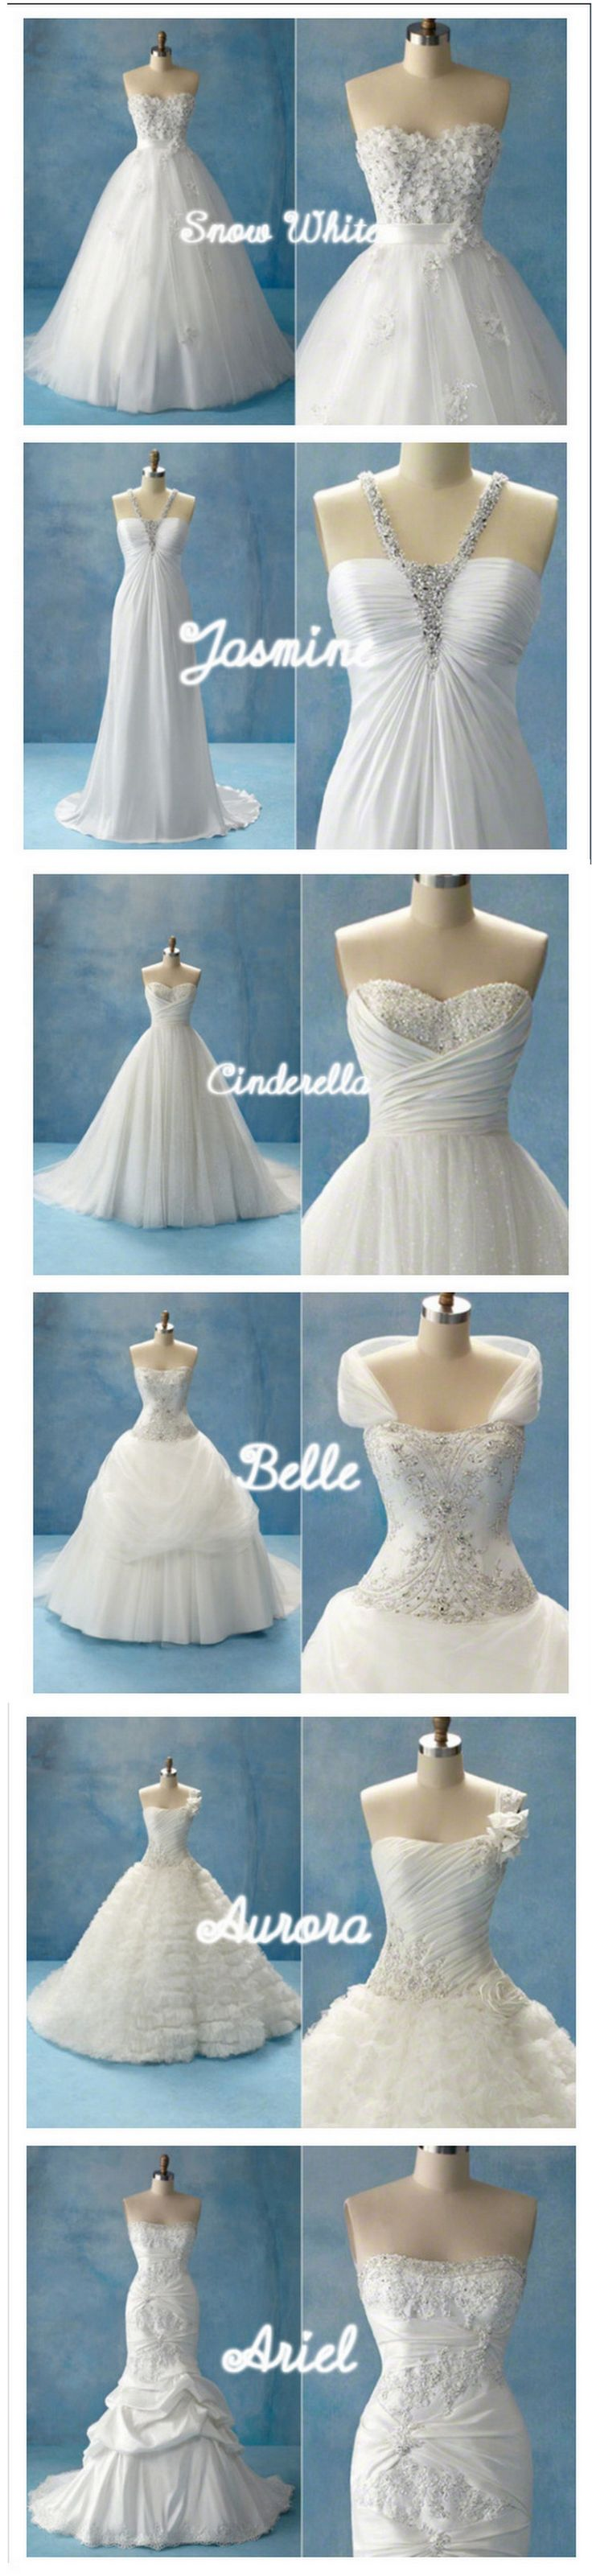 It's my dream to have a Disney princess inspired wedding dress <3